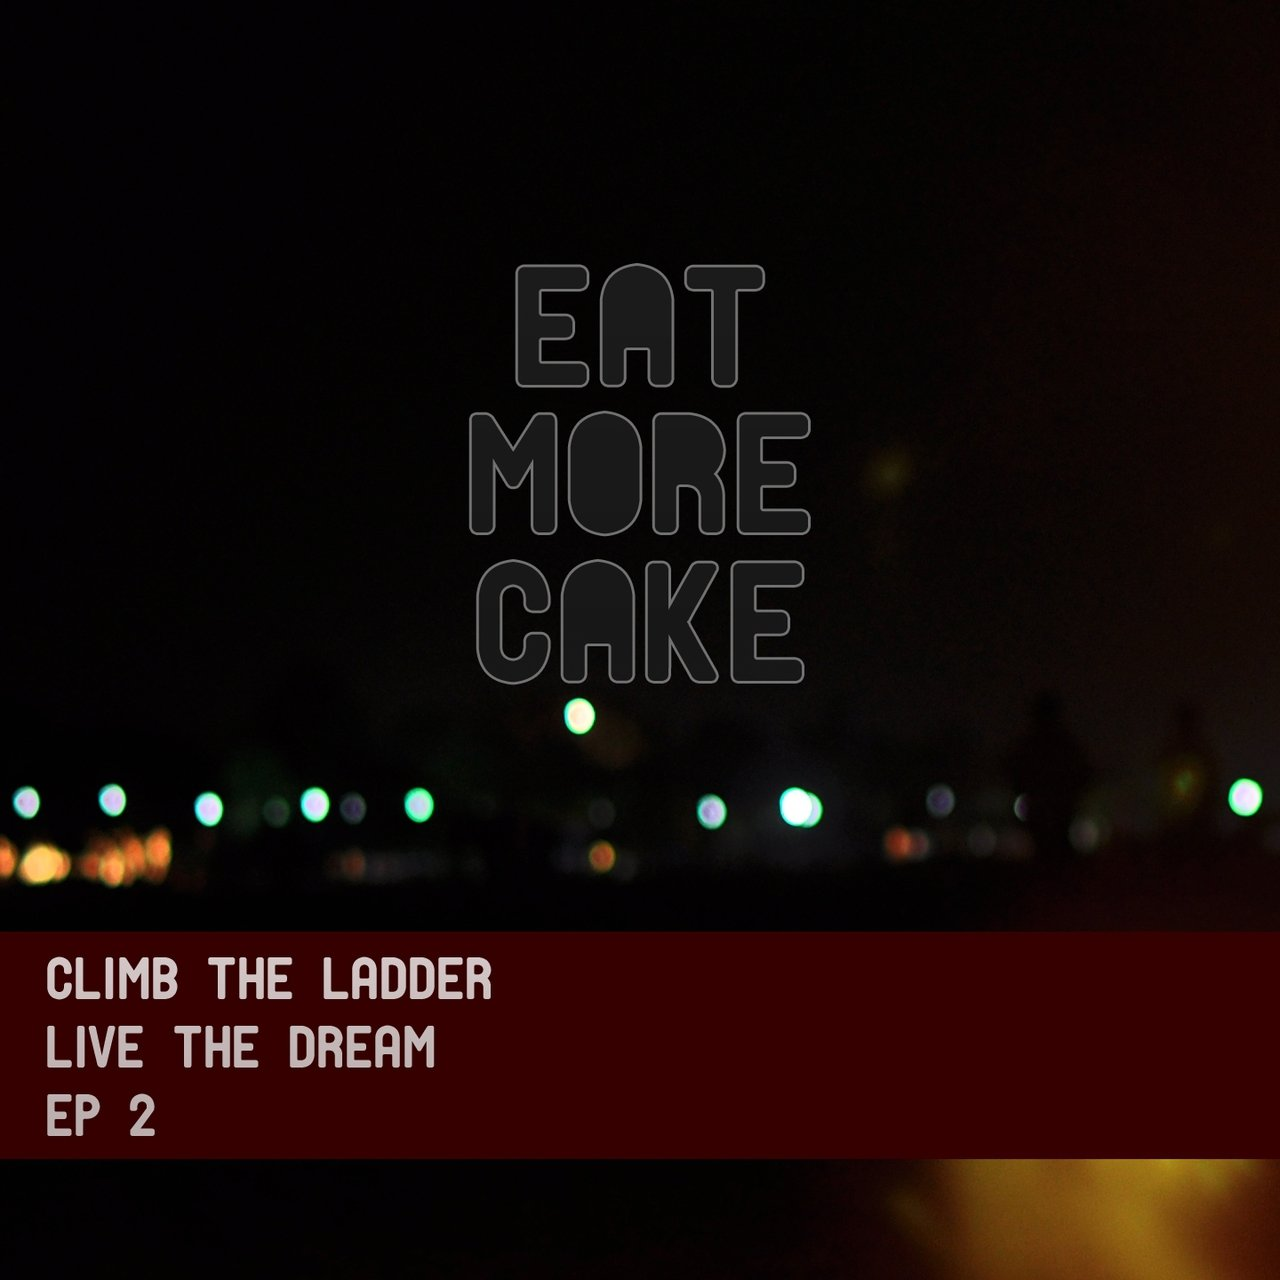 Climb the Ladder: Live the Dream EP 2